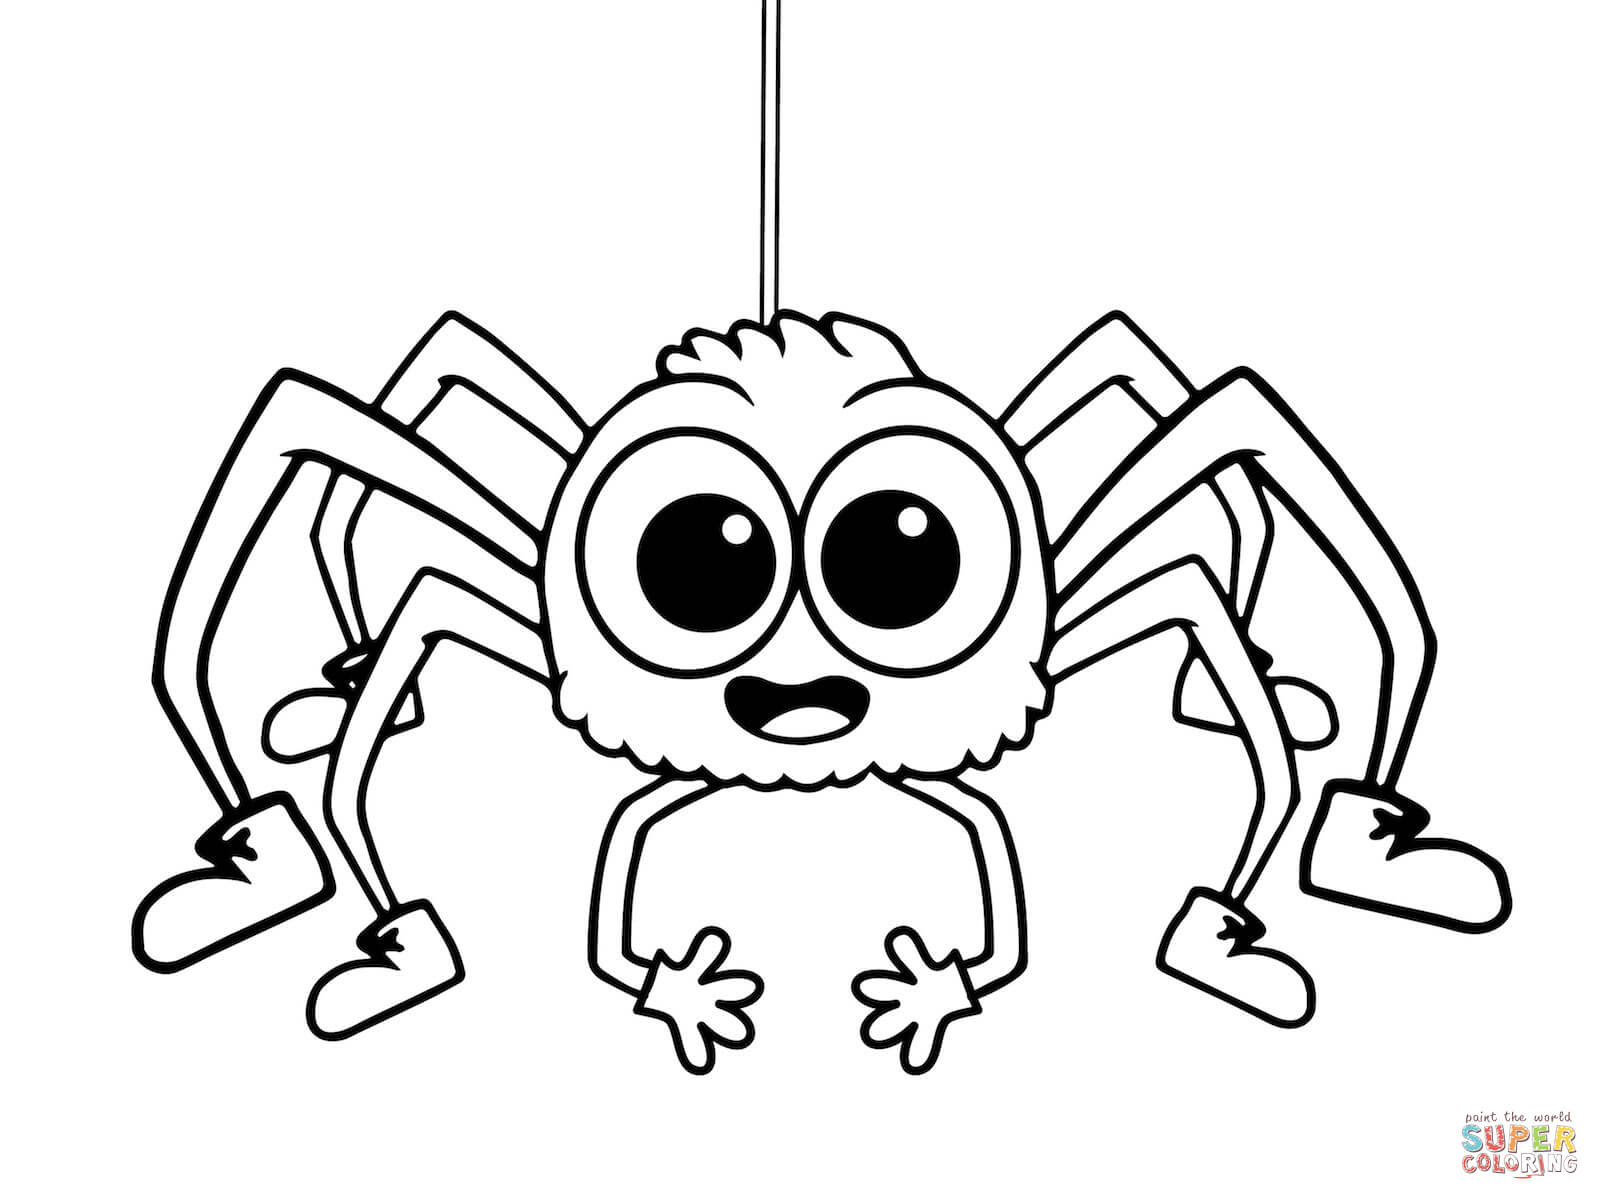 the Incy Wincy Spider